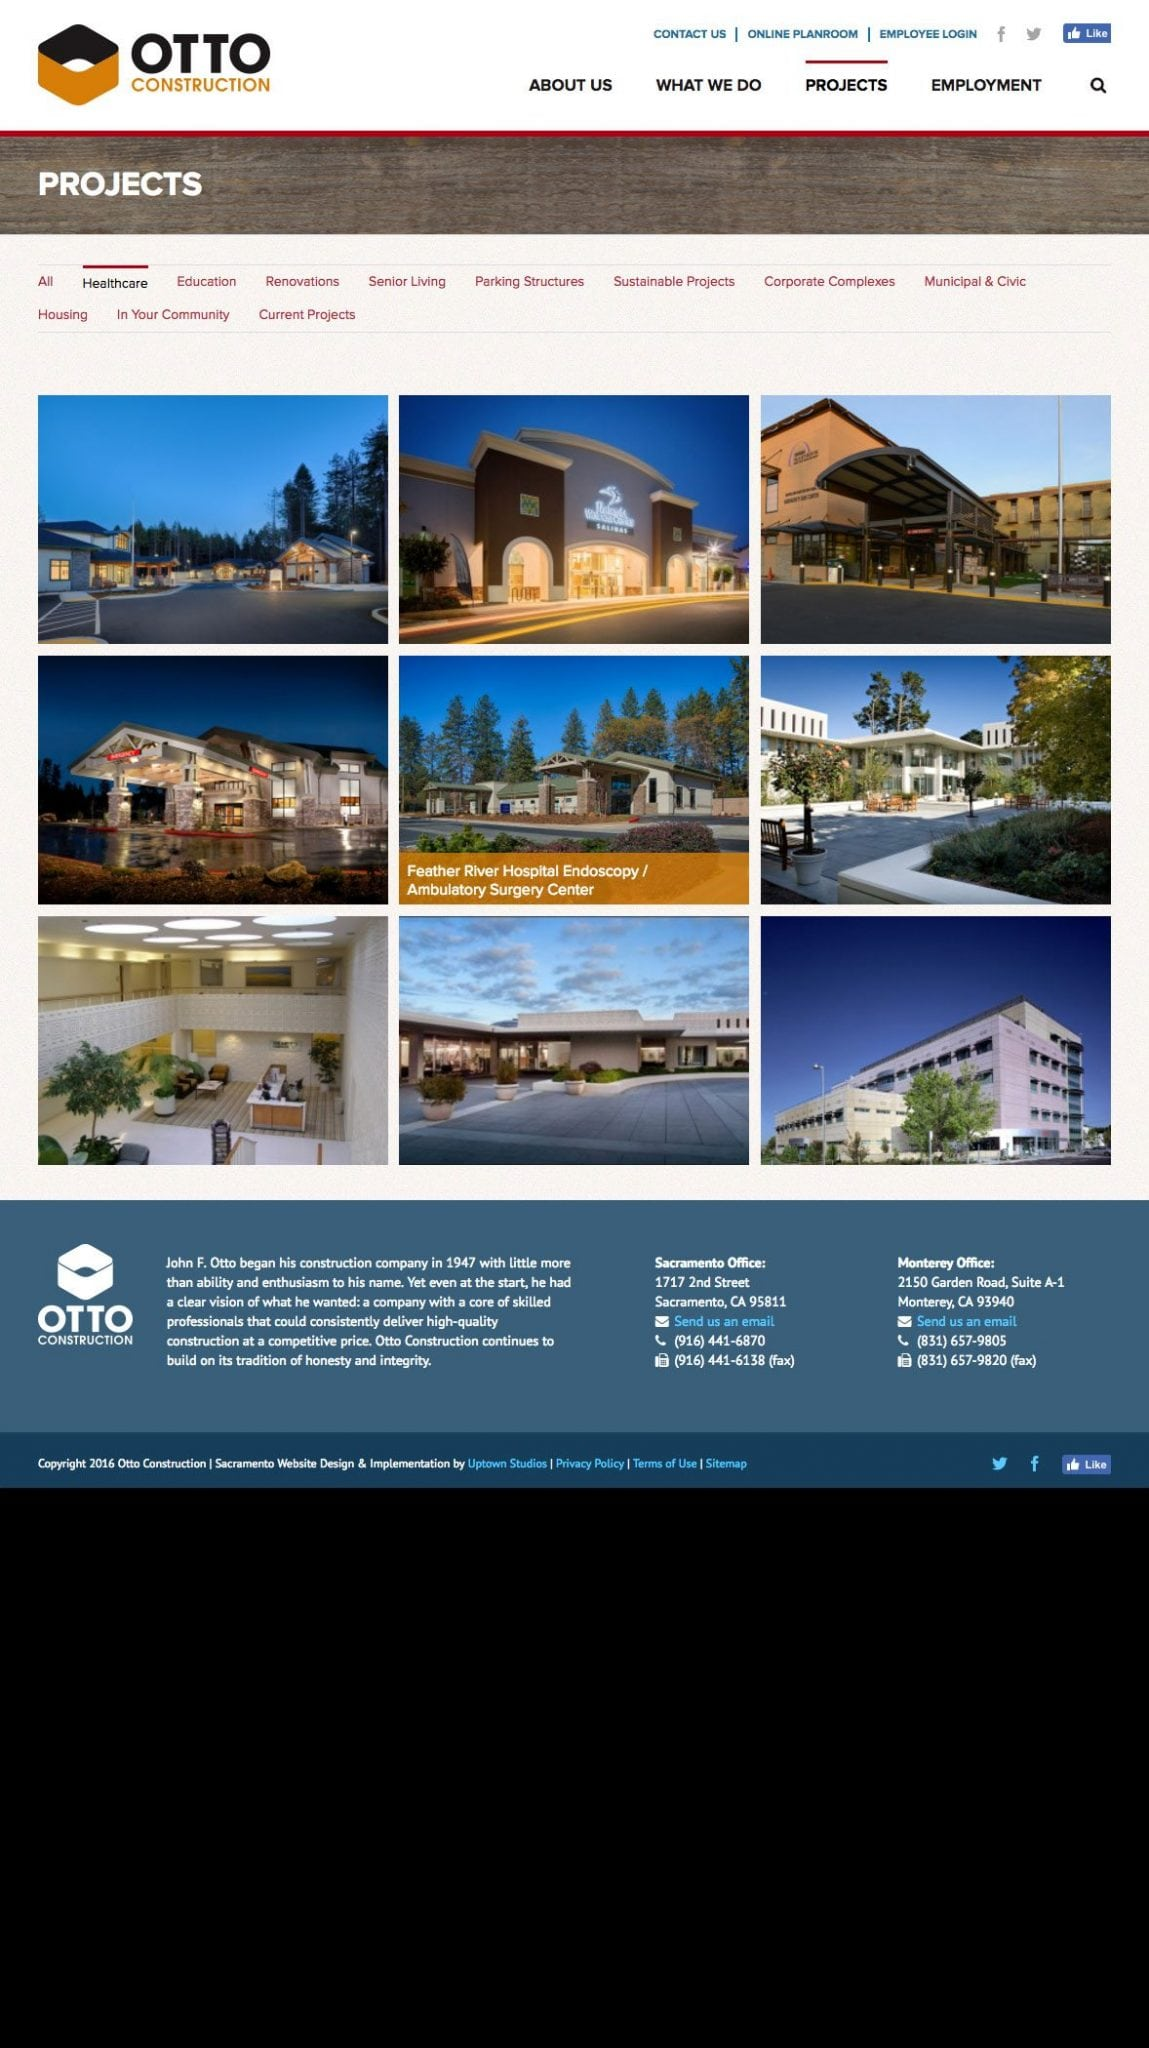 A screenshot of the Otto Construction projects page